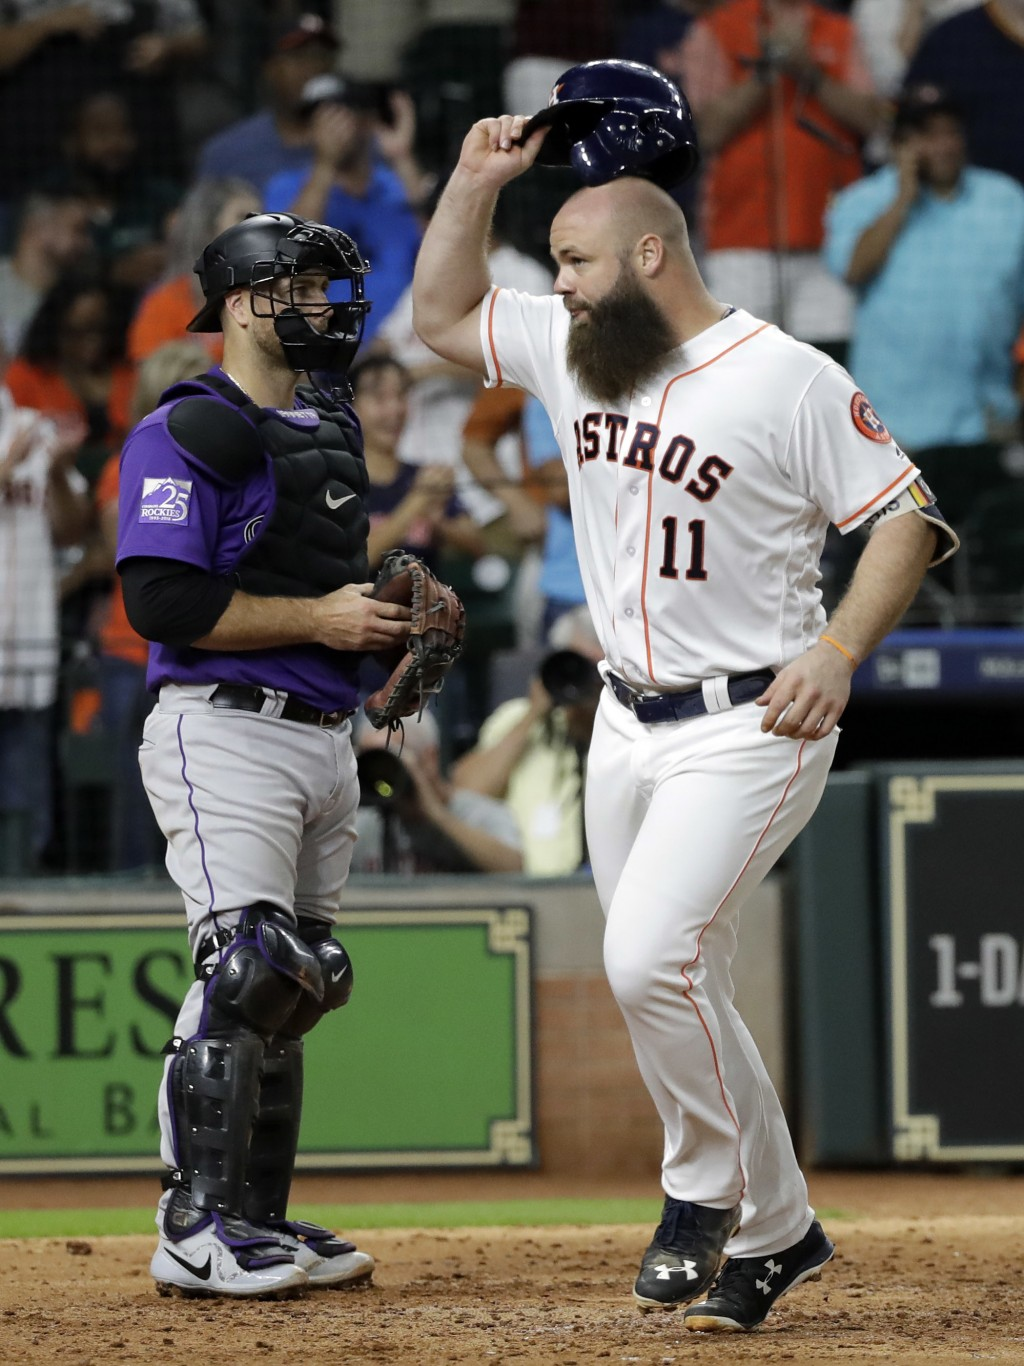 Houston Astros' Evan Gattis (11) celebrates after hitting a home run as Colorado Rockies catcher Chris Iannetta stands near home plate during the fift...